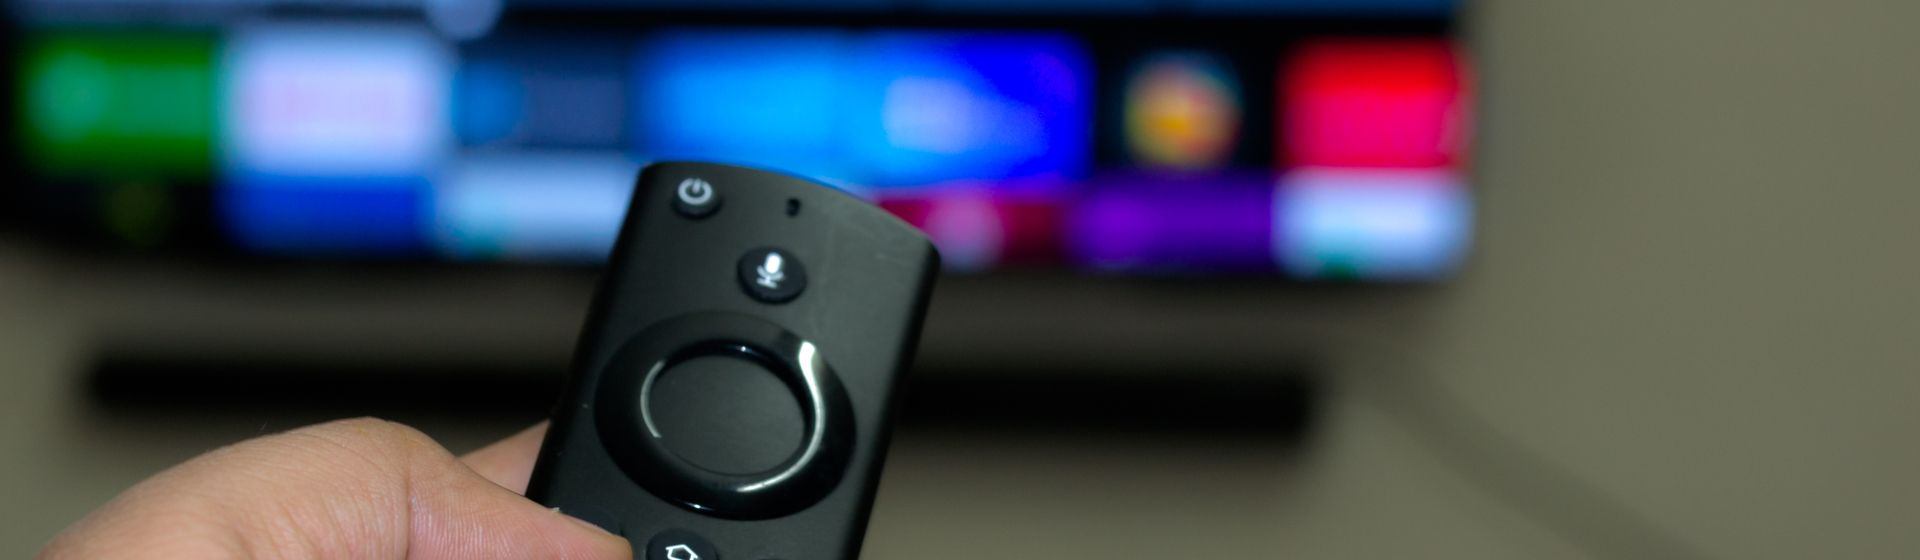 Amazon Fire TV stick 4K vs Fire TV stick: o que muda entre essas smart TV boxes?